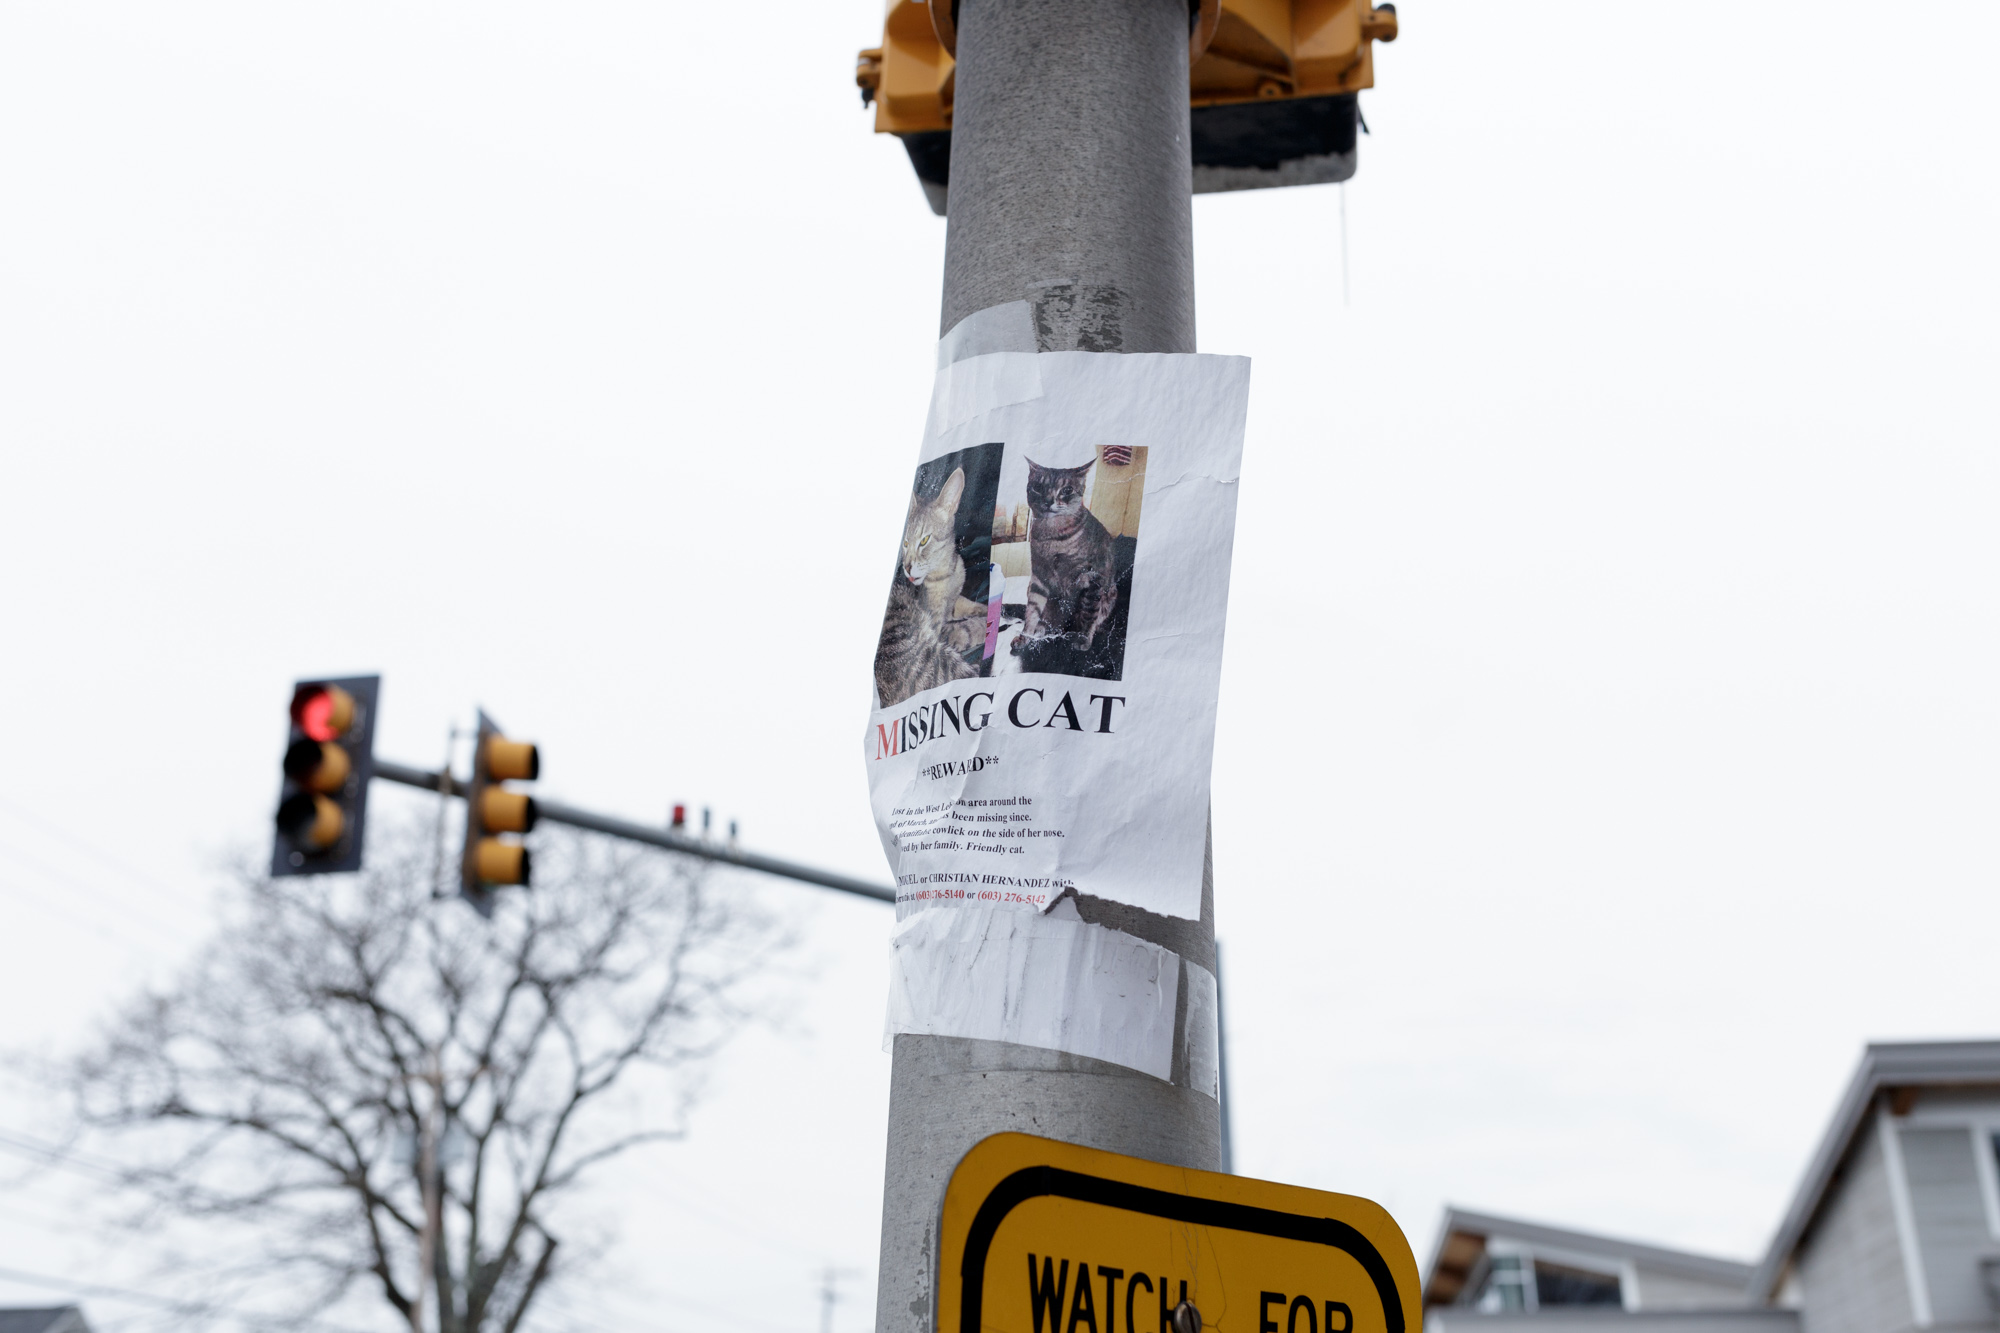 Missing Cat - Traffic Light